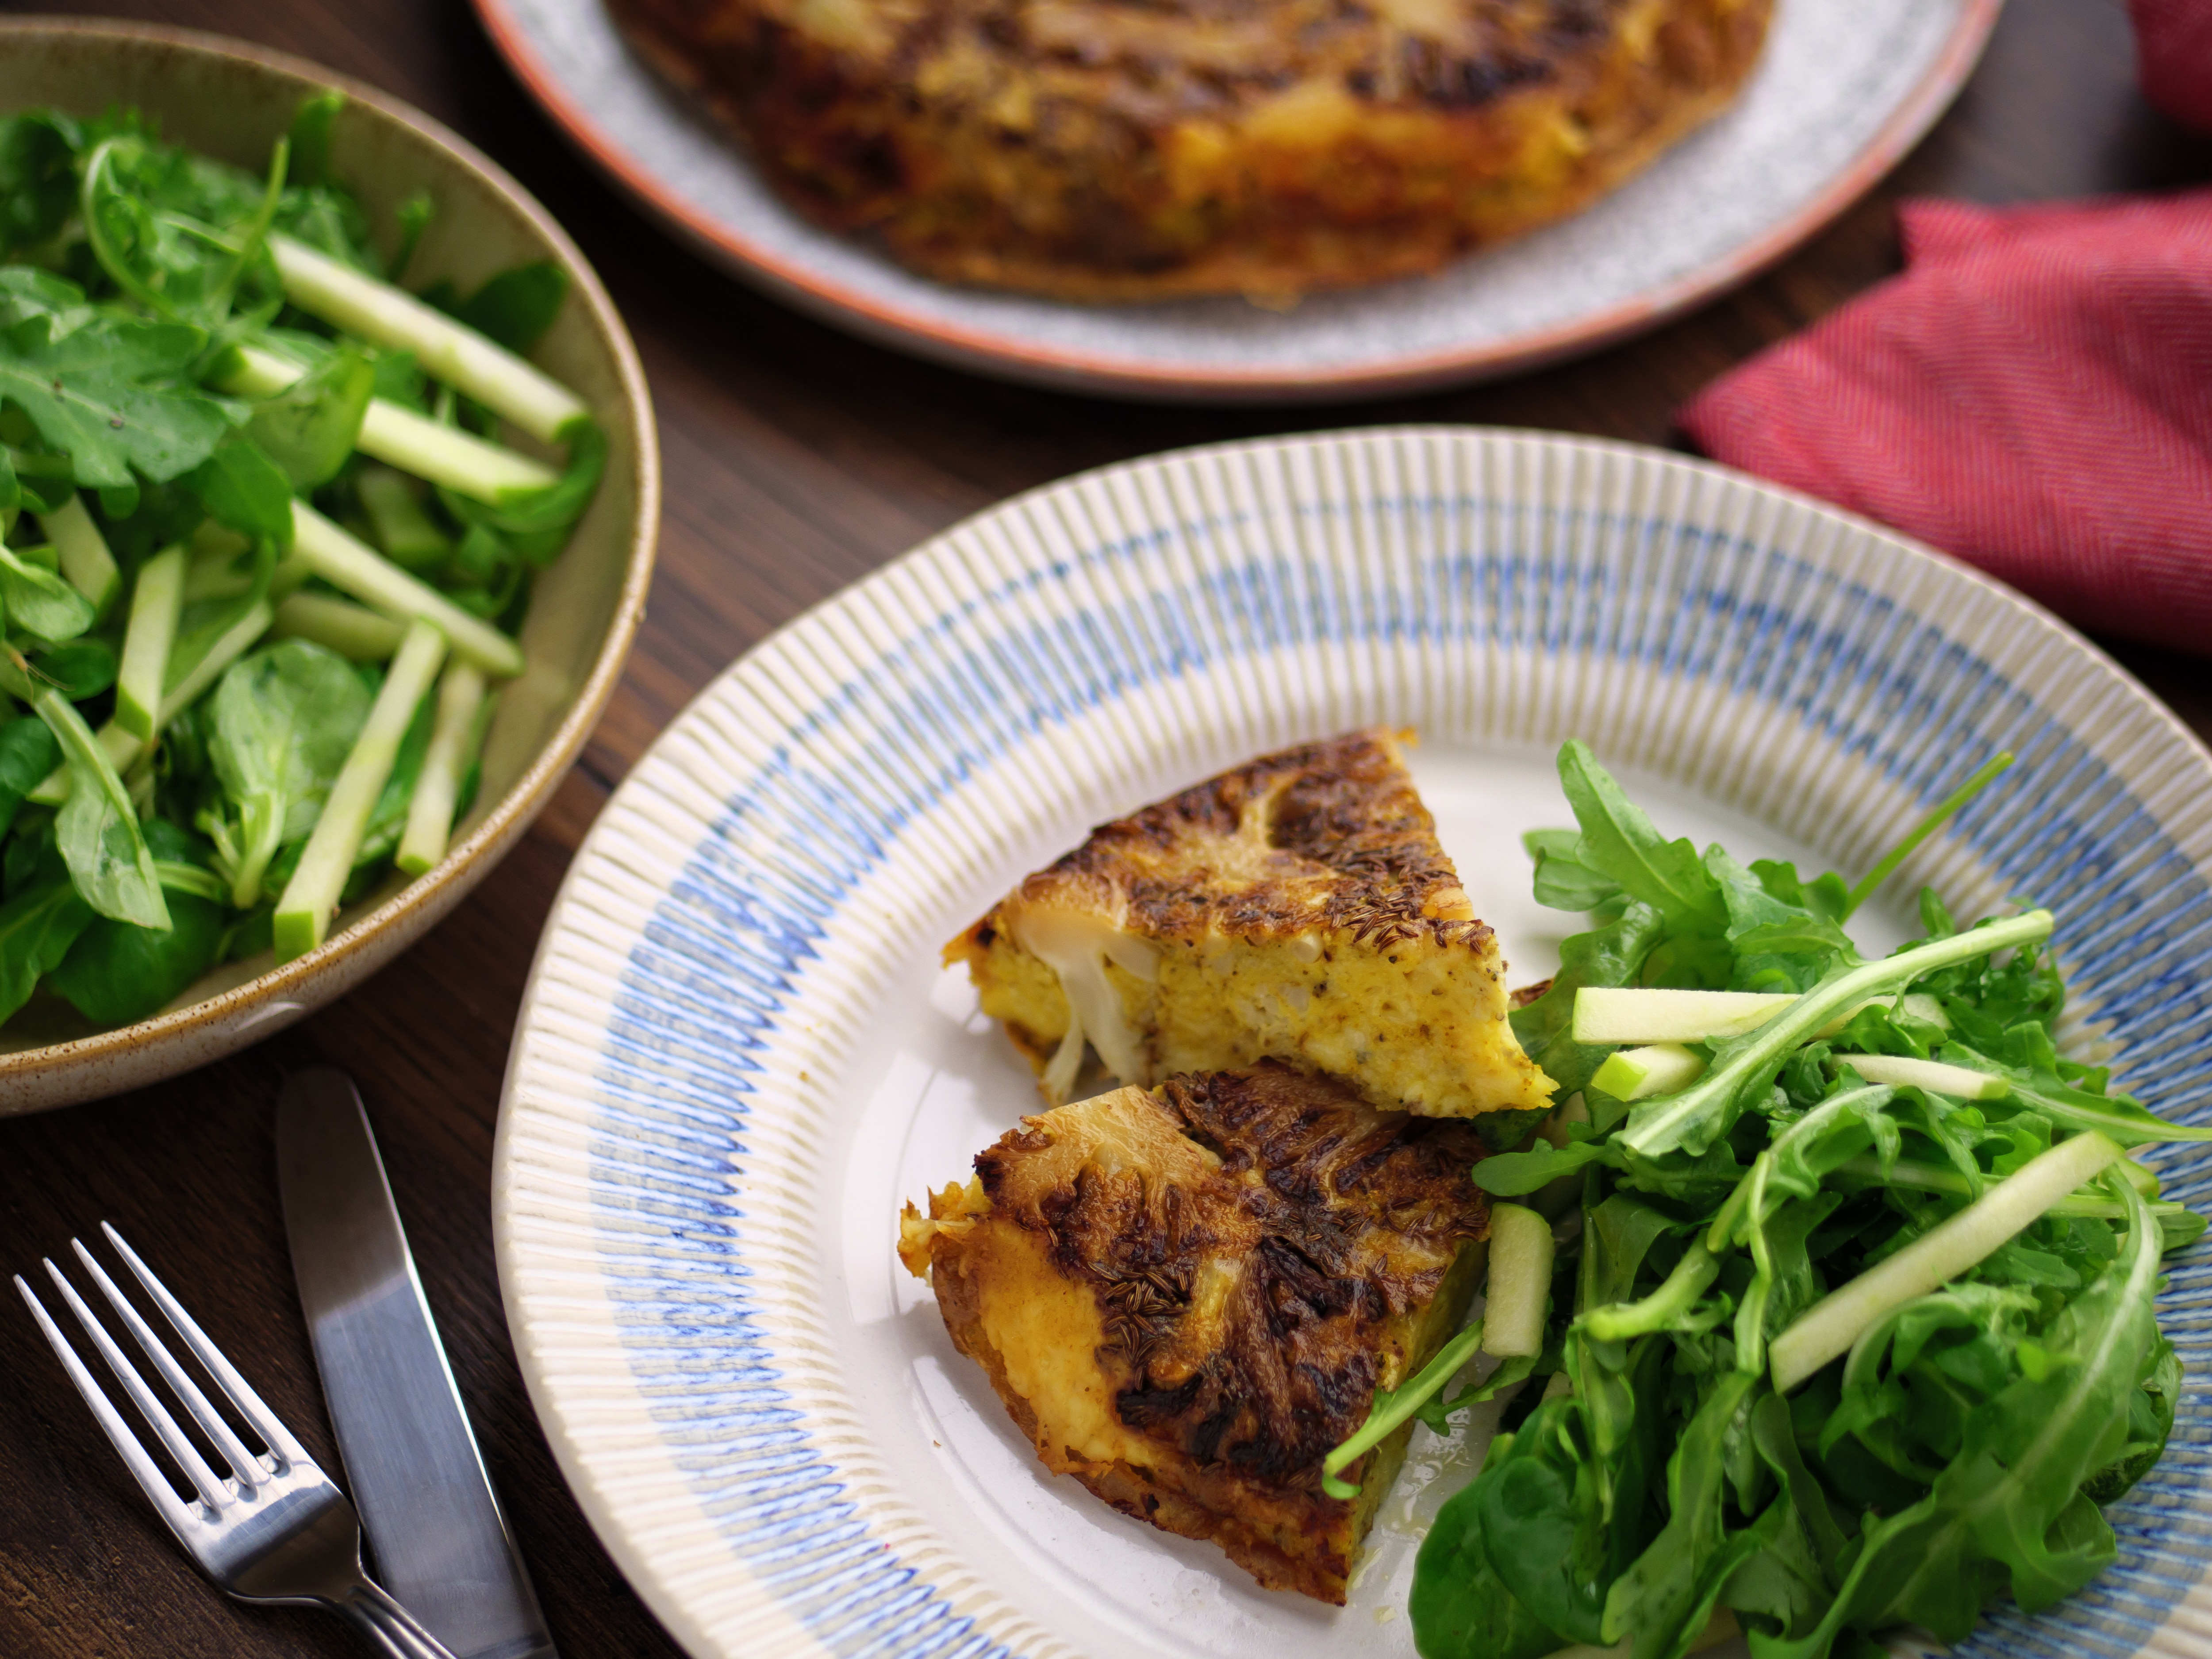 Roasted Cauliflower & Cheese Omlette With Apple Salad